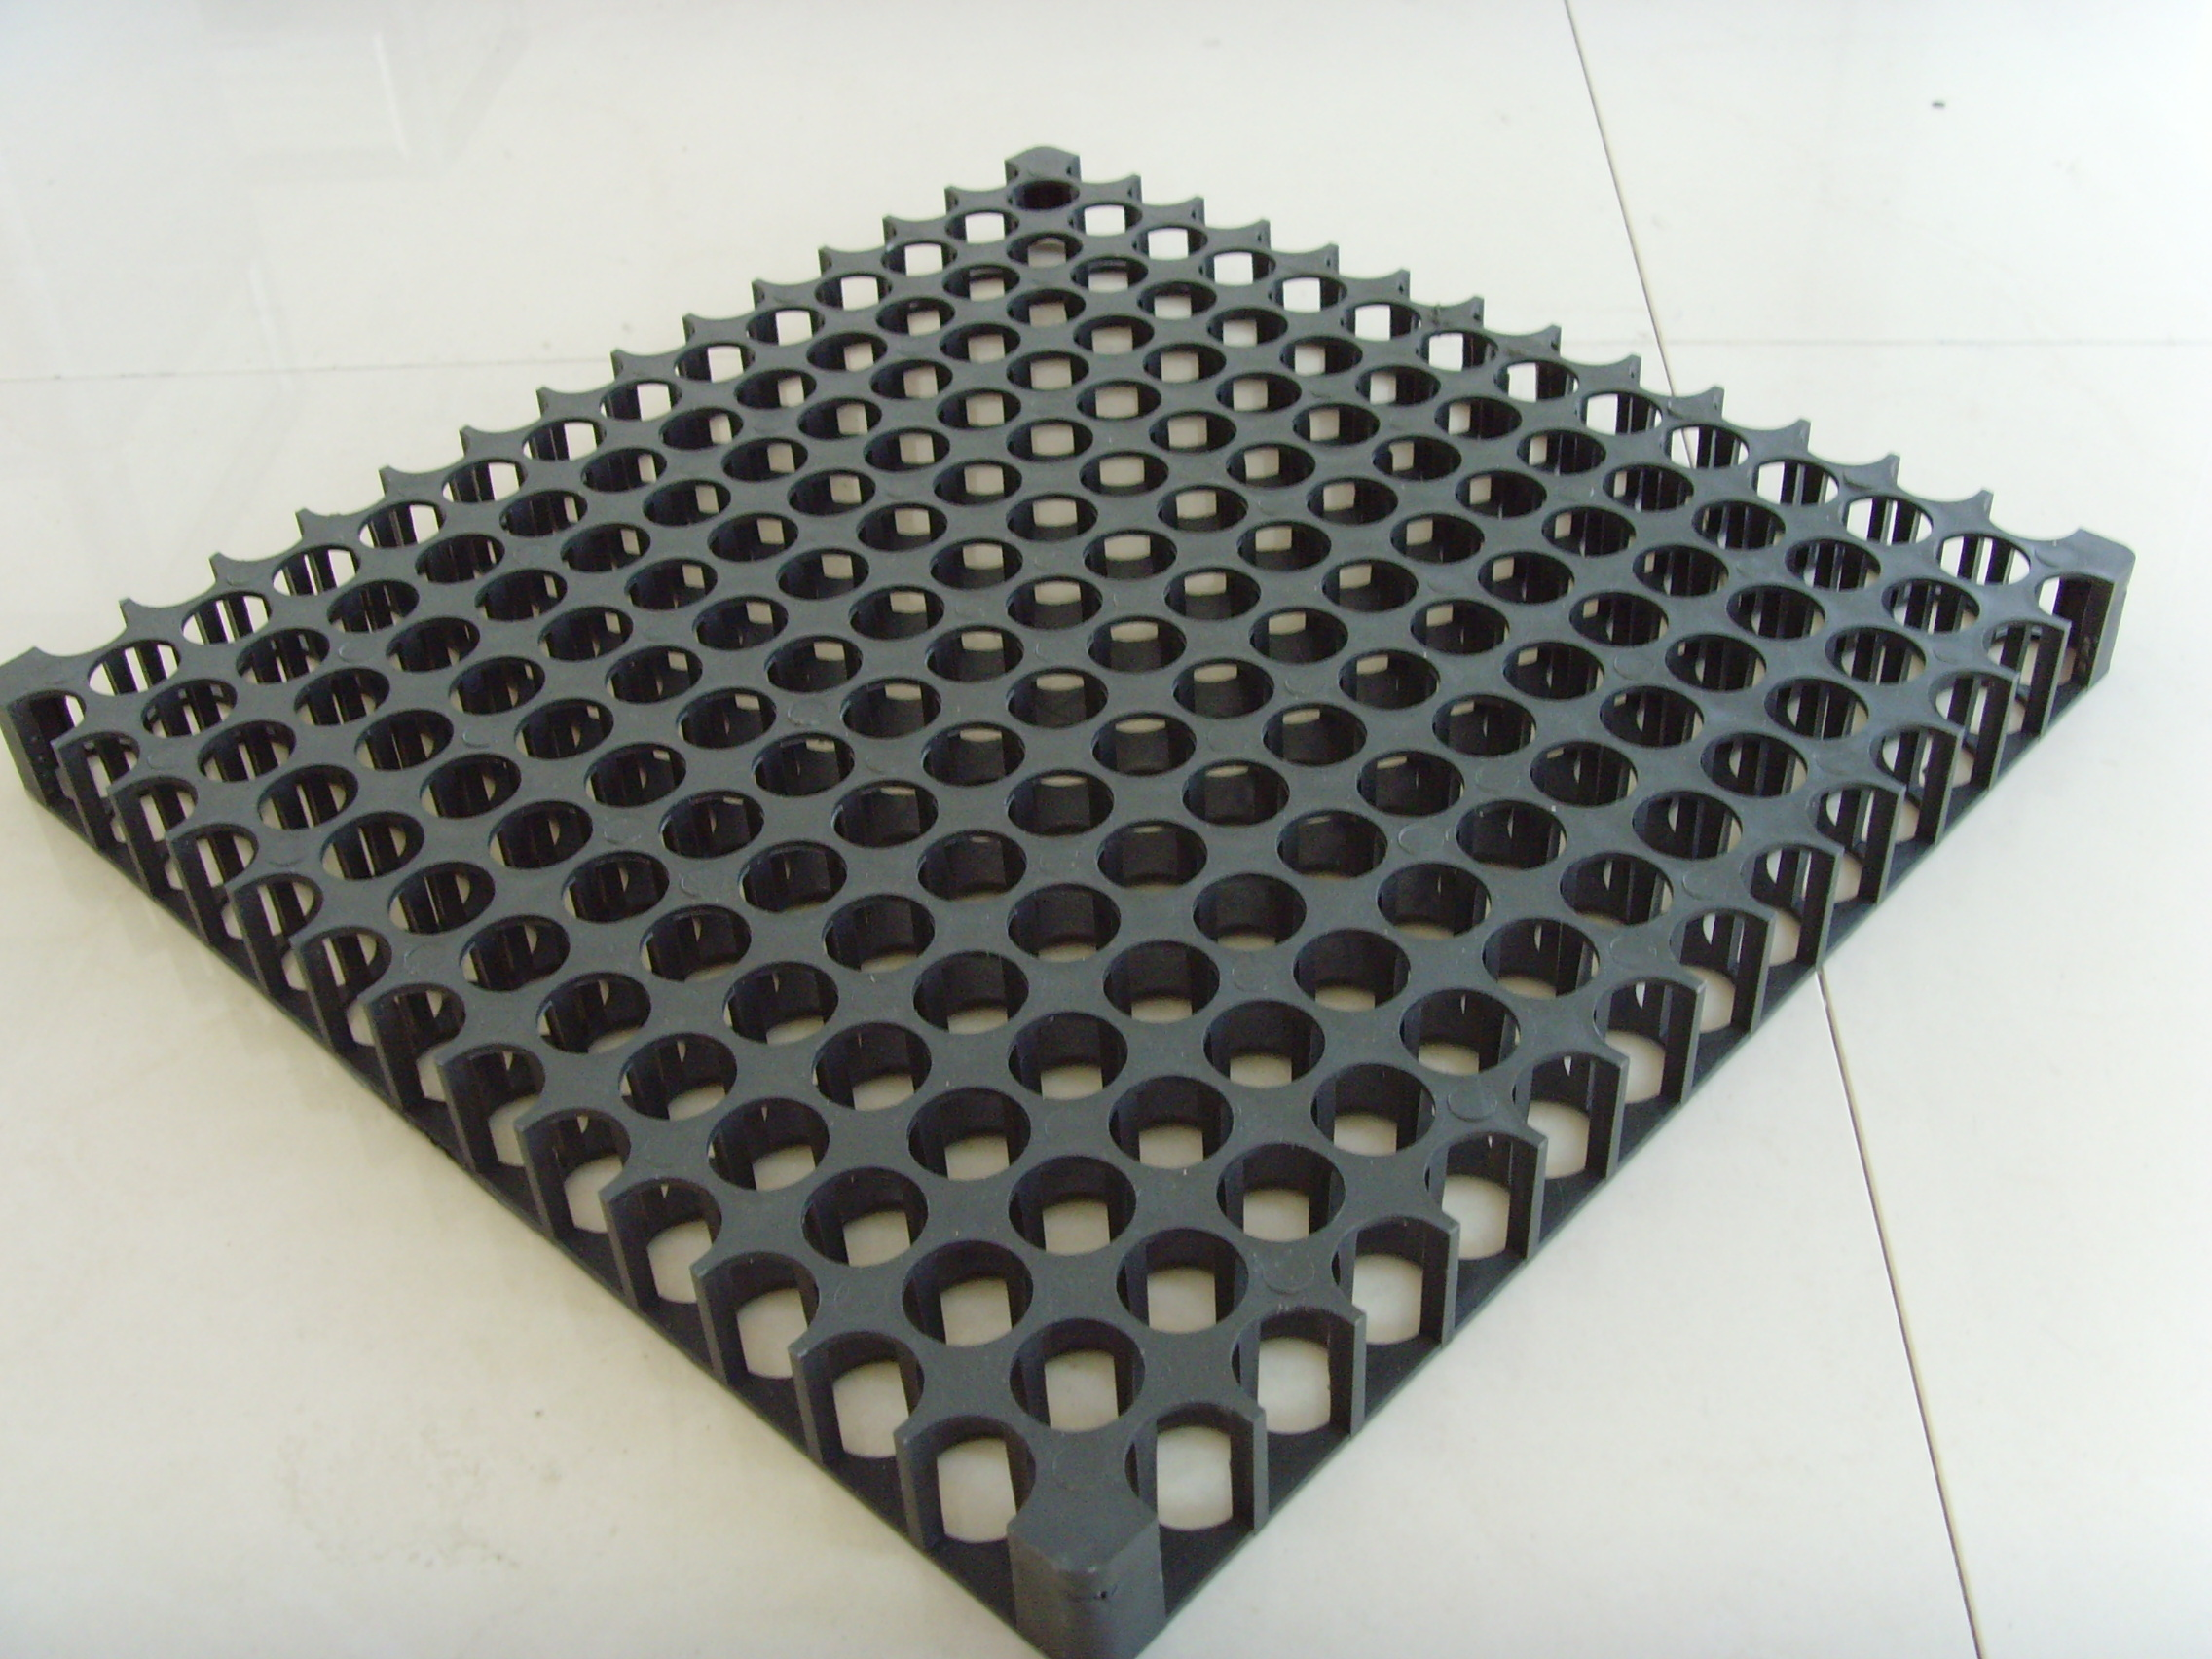 Drainage square for roof top gardens and sub surface drain